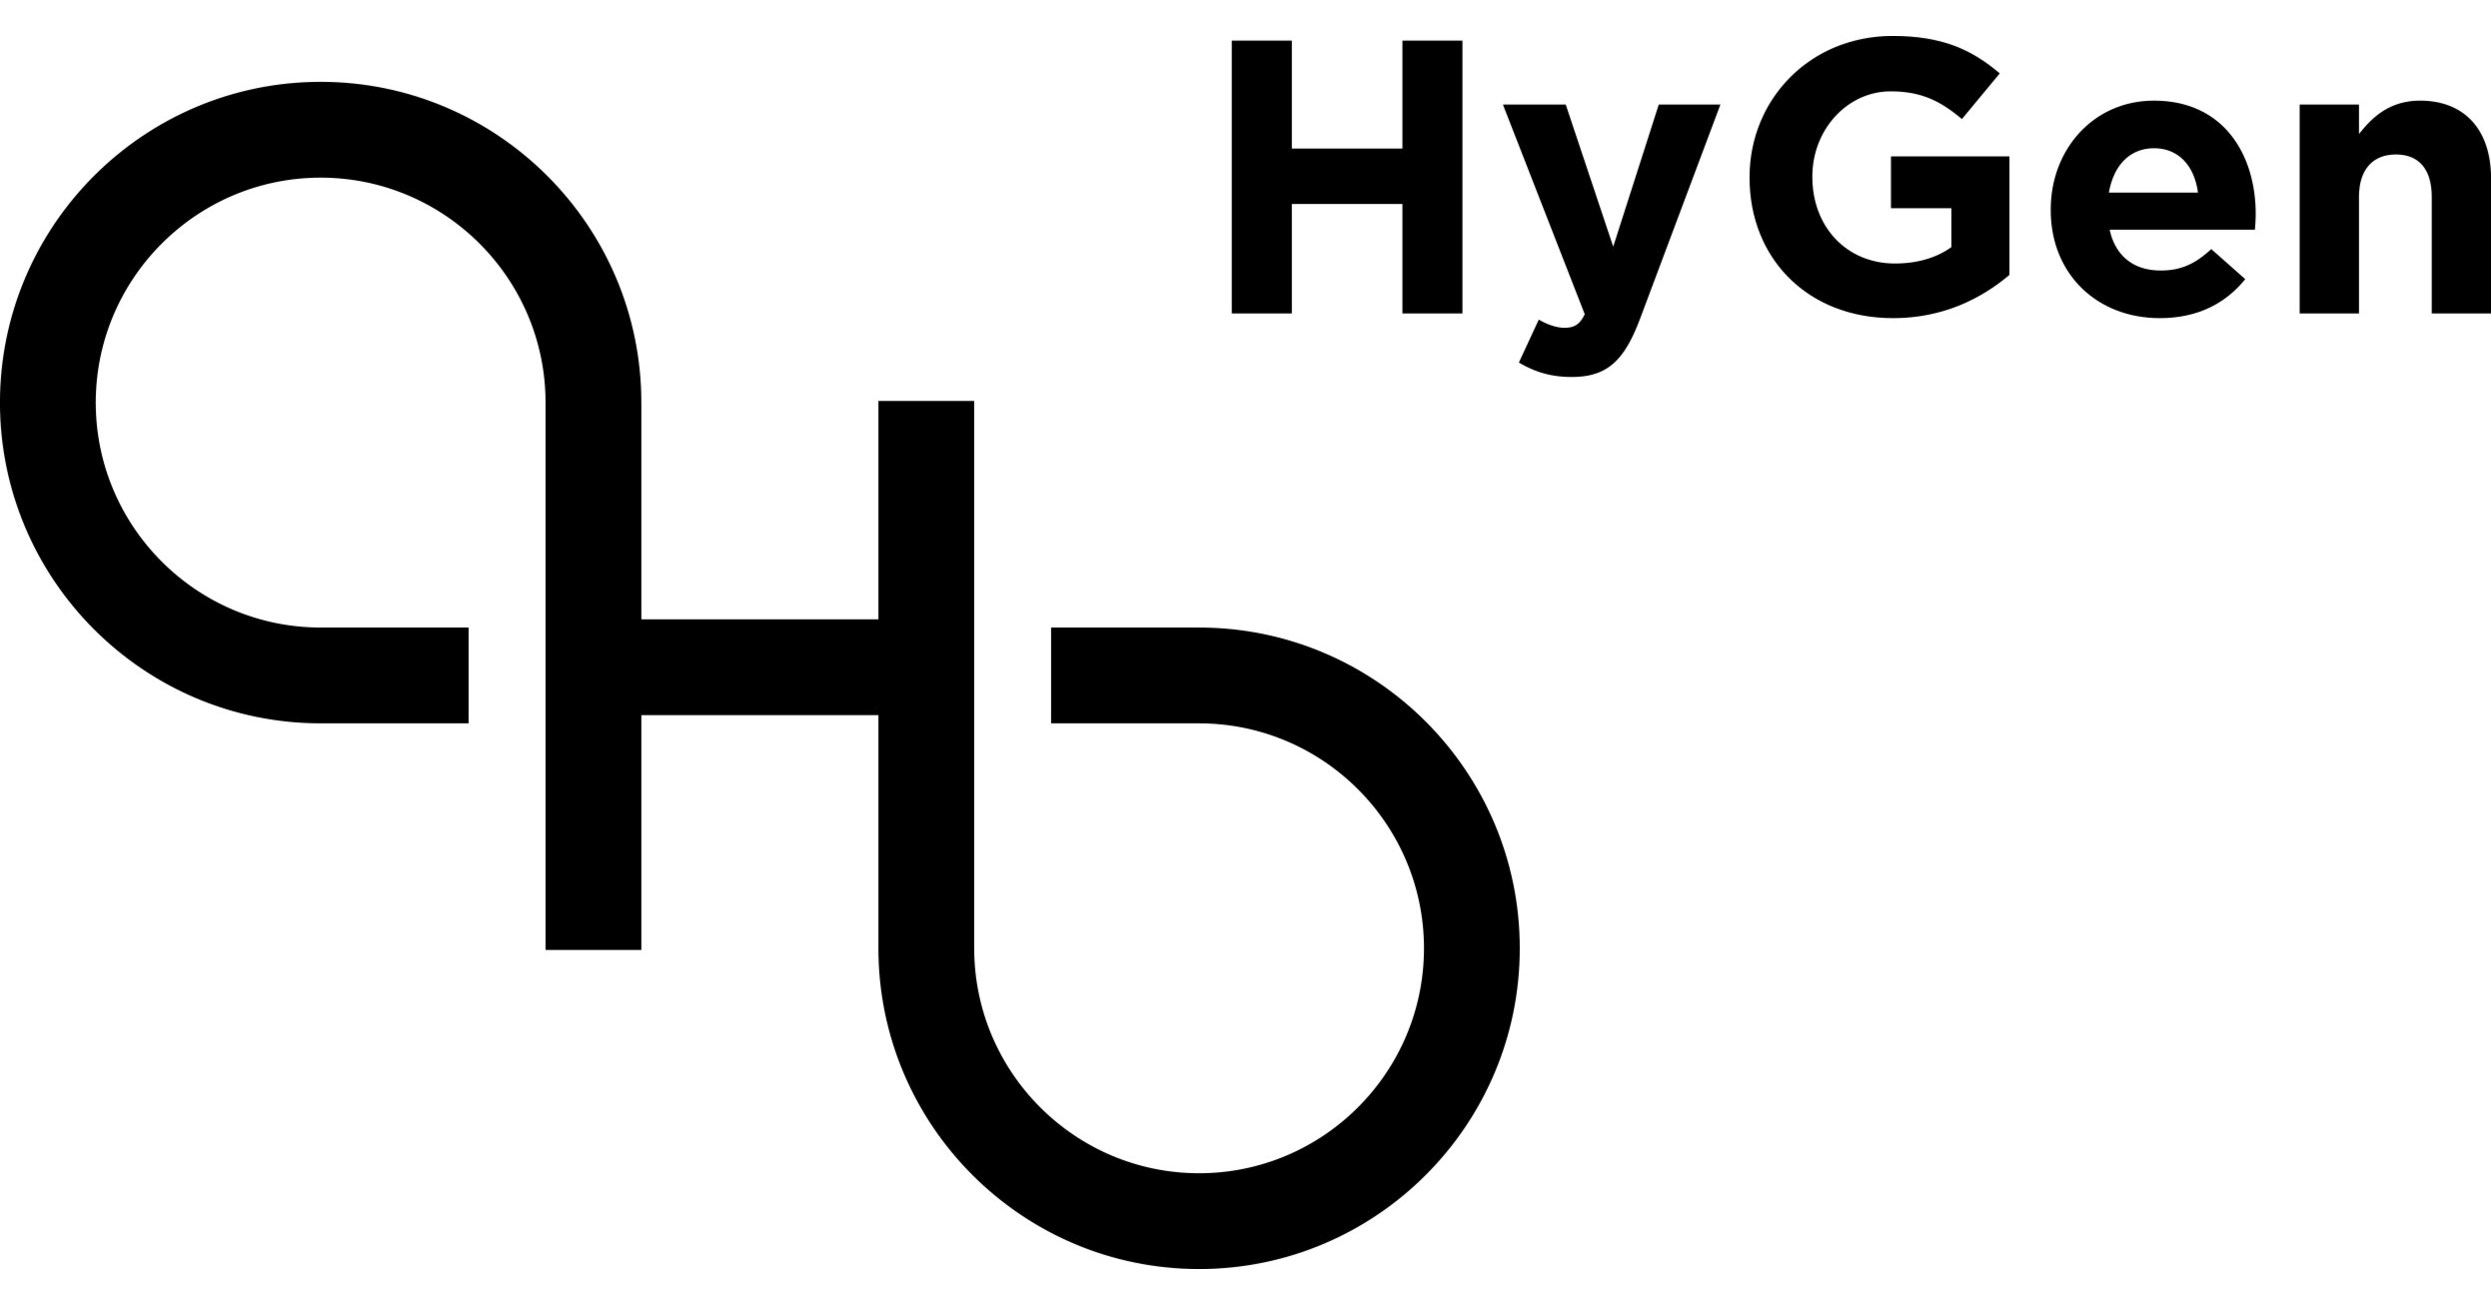 Hygen industries offers first investment opportunity in clean hygen industries offers first investment opportunity in clean renewable hydrogen for all buycottarizona Gallery